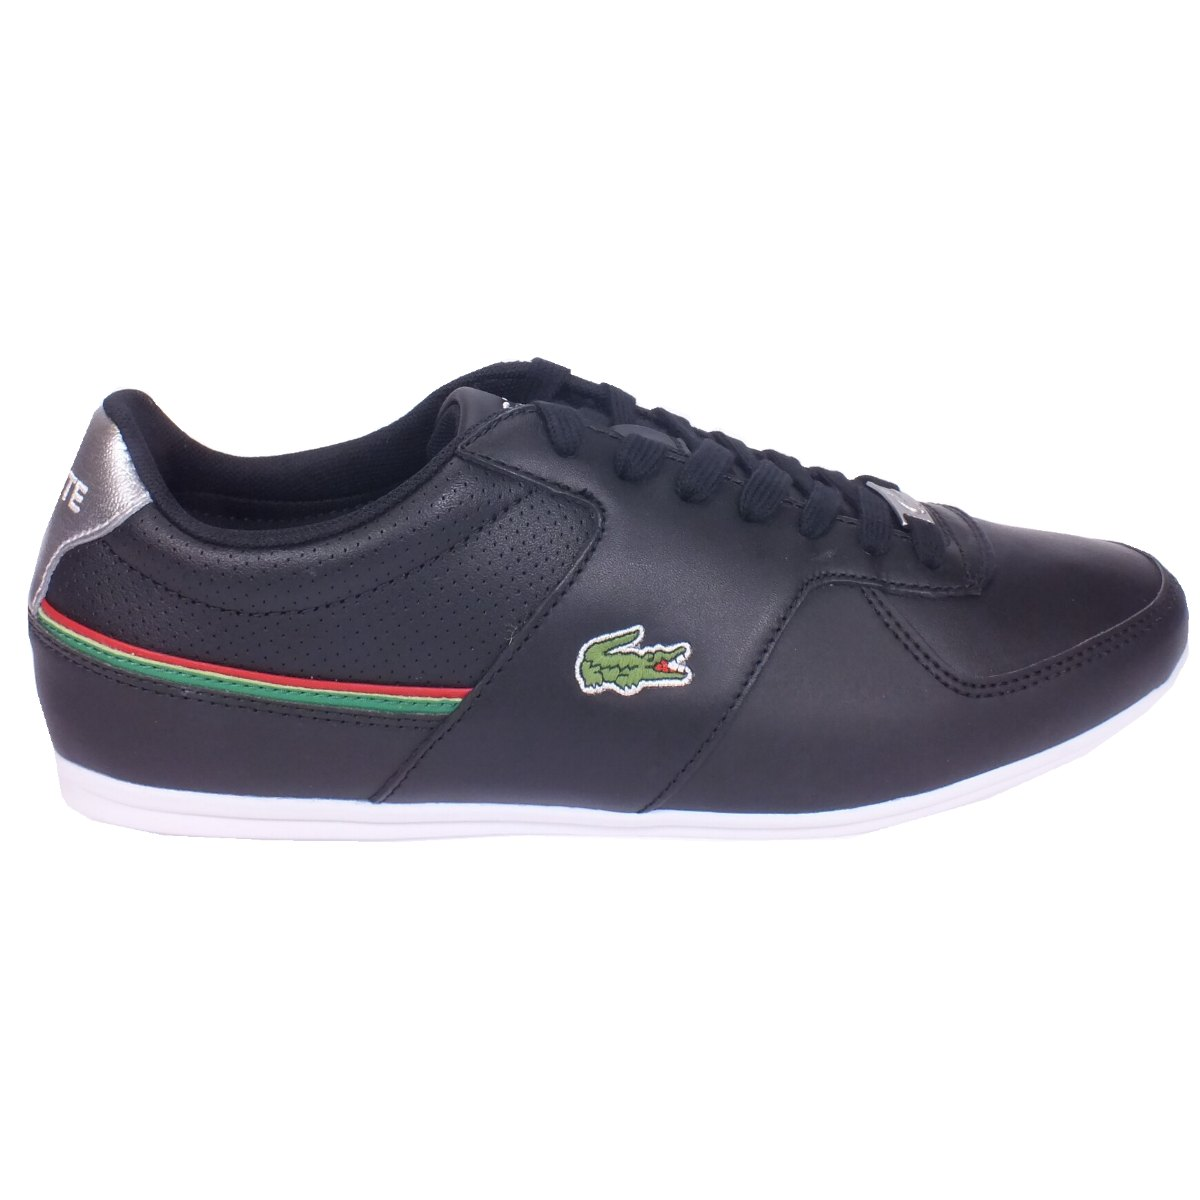 lacoste taloire sport slx schuhe turnschuhe sneaker leder. Black Bedroom Furniture Sets. Home Design Ideas